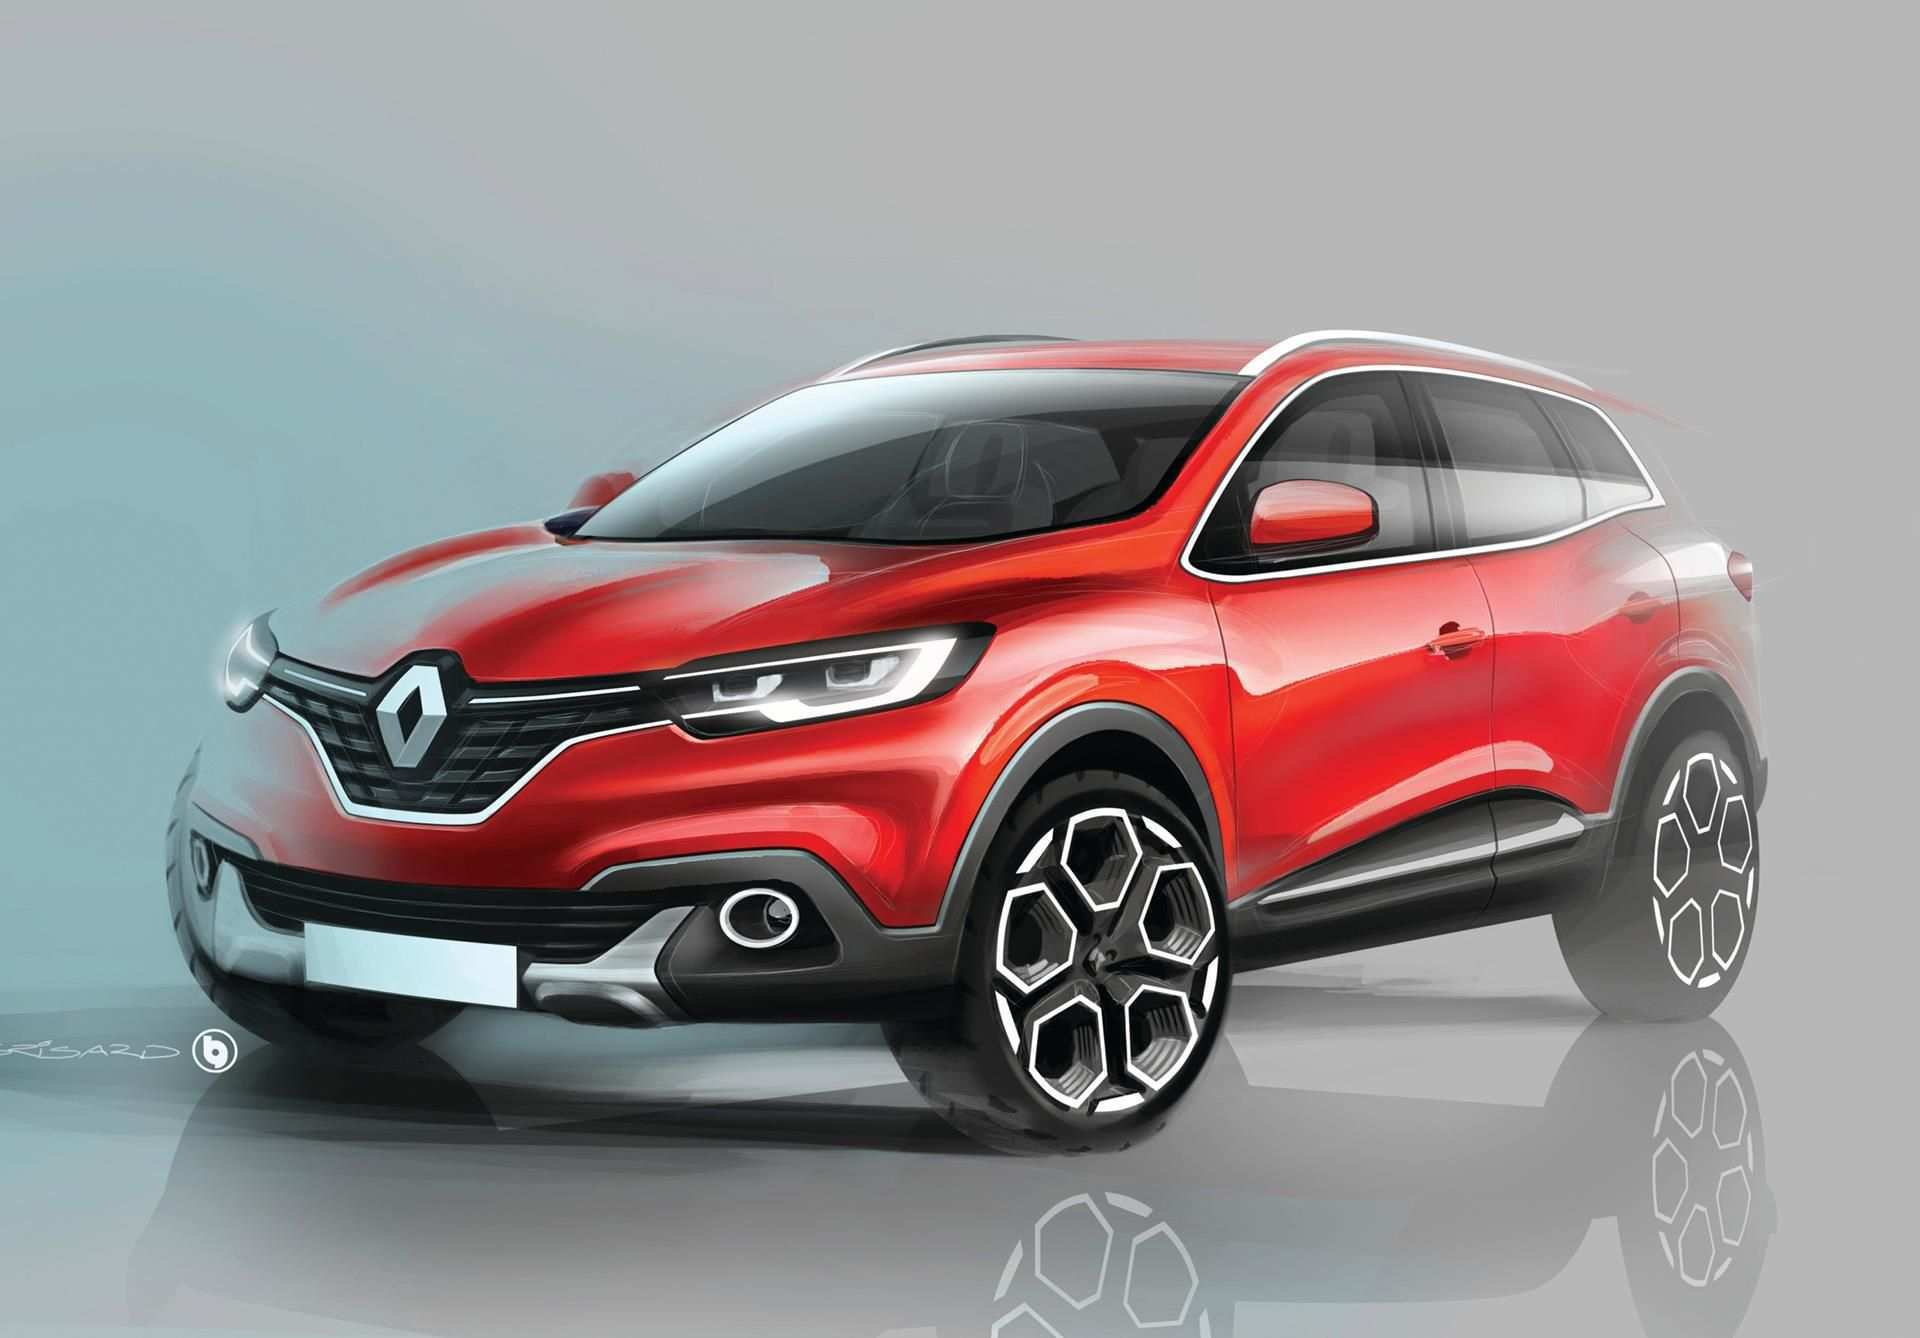 96 New 2020 Renault Kadjar Speed Test with 2020 Renault Kadjar